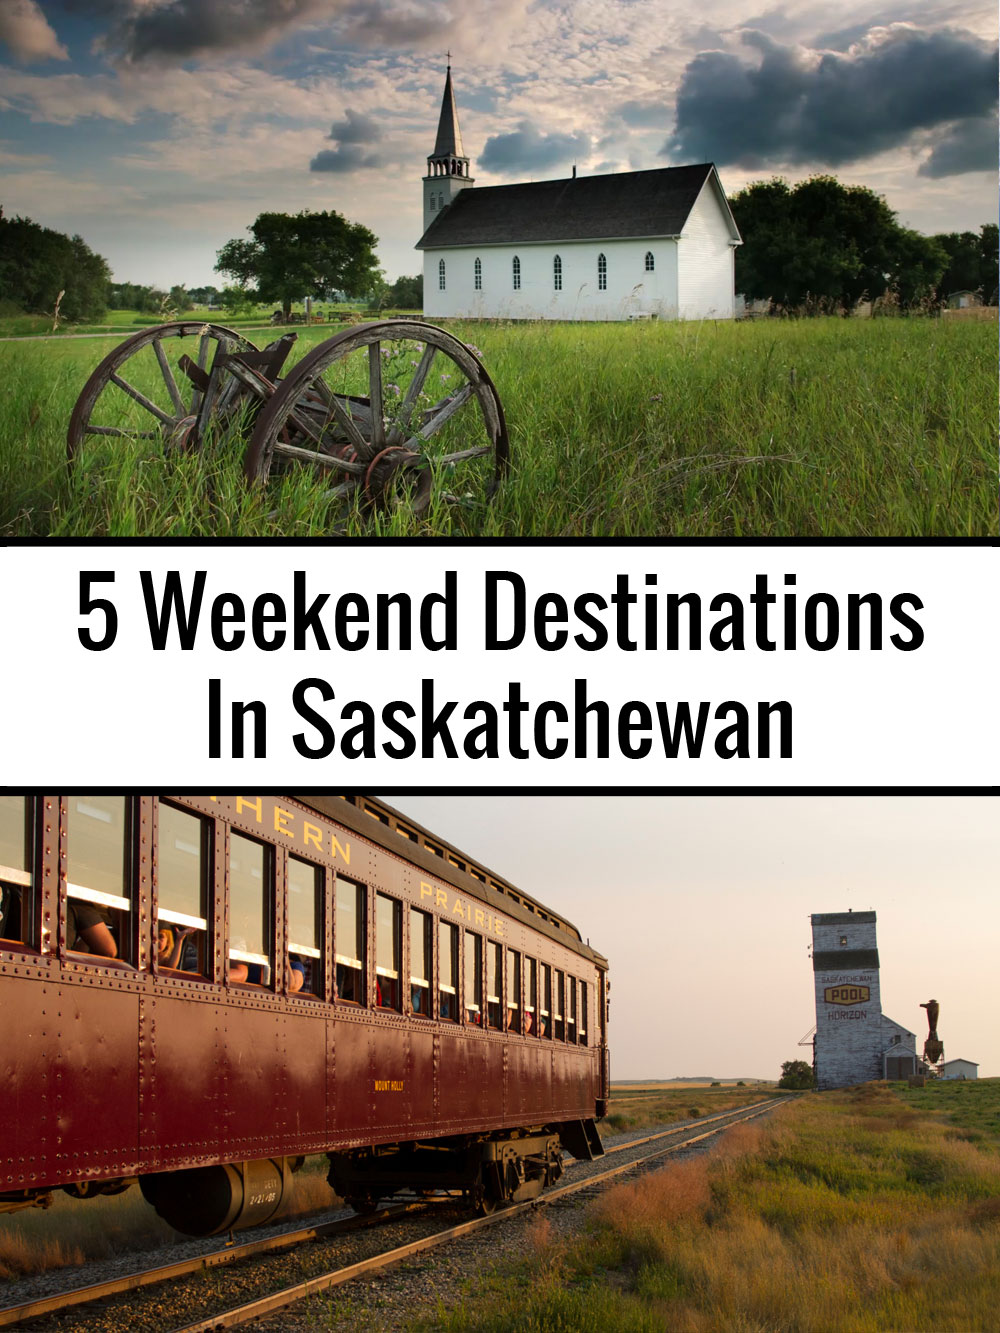 5 Weekend Destinations In Saskatchewan #ConnectedMoments